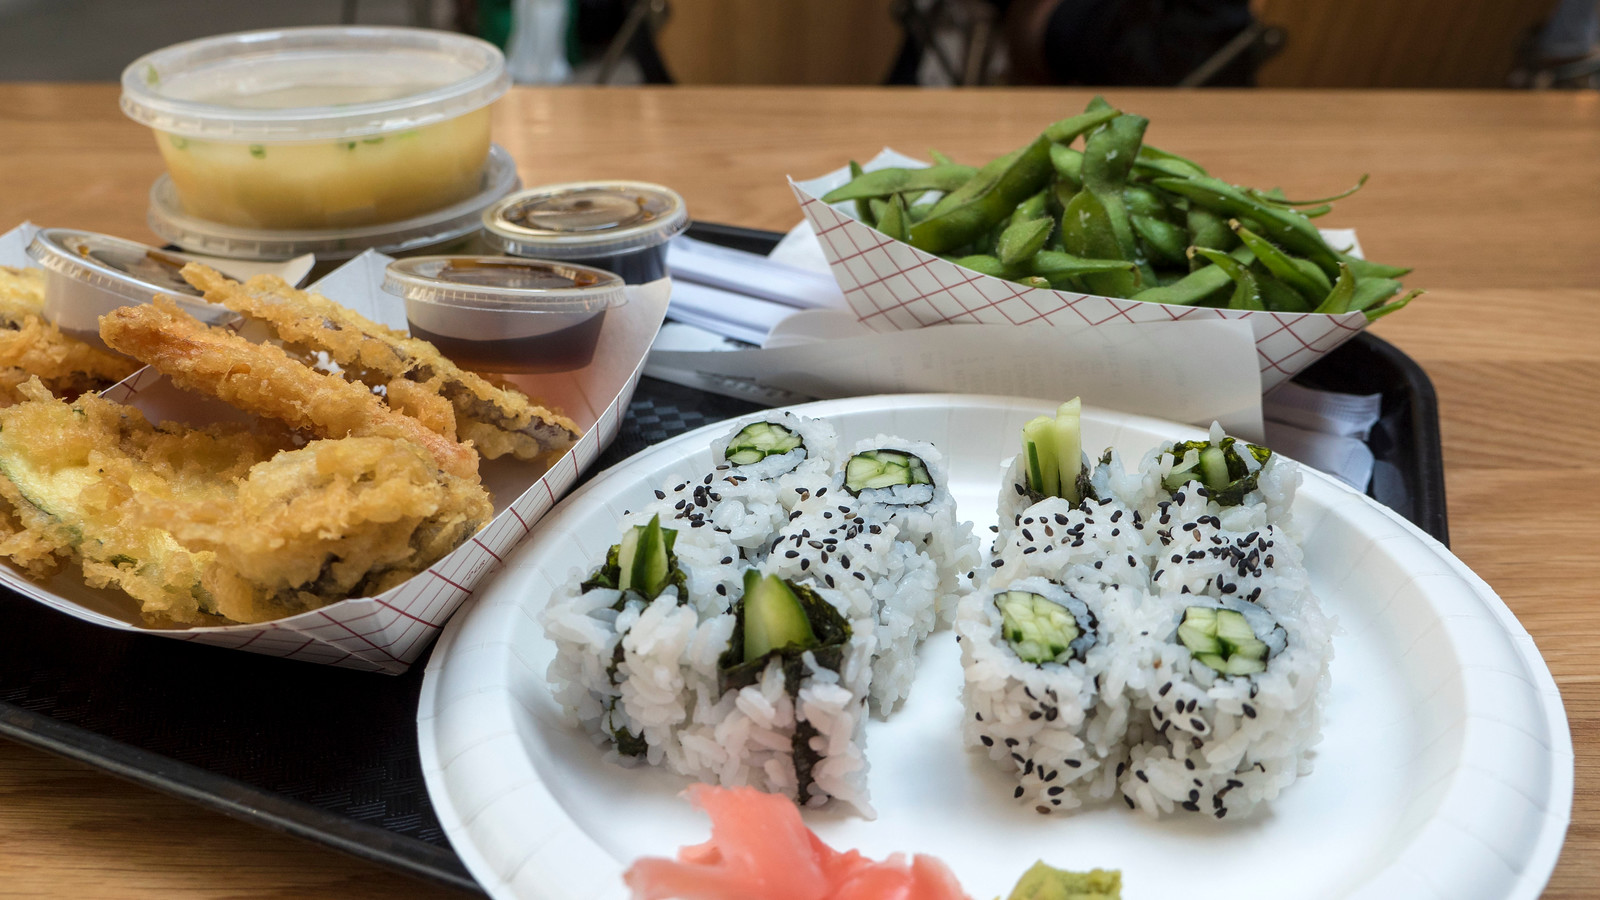 Vegan Restaurants in Winnipeg: A Winnipeg Vegan Guide - The Forks - Fusian Sushi Vegan Options